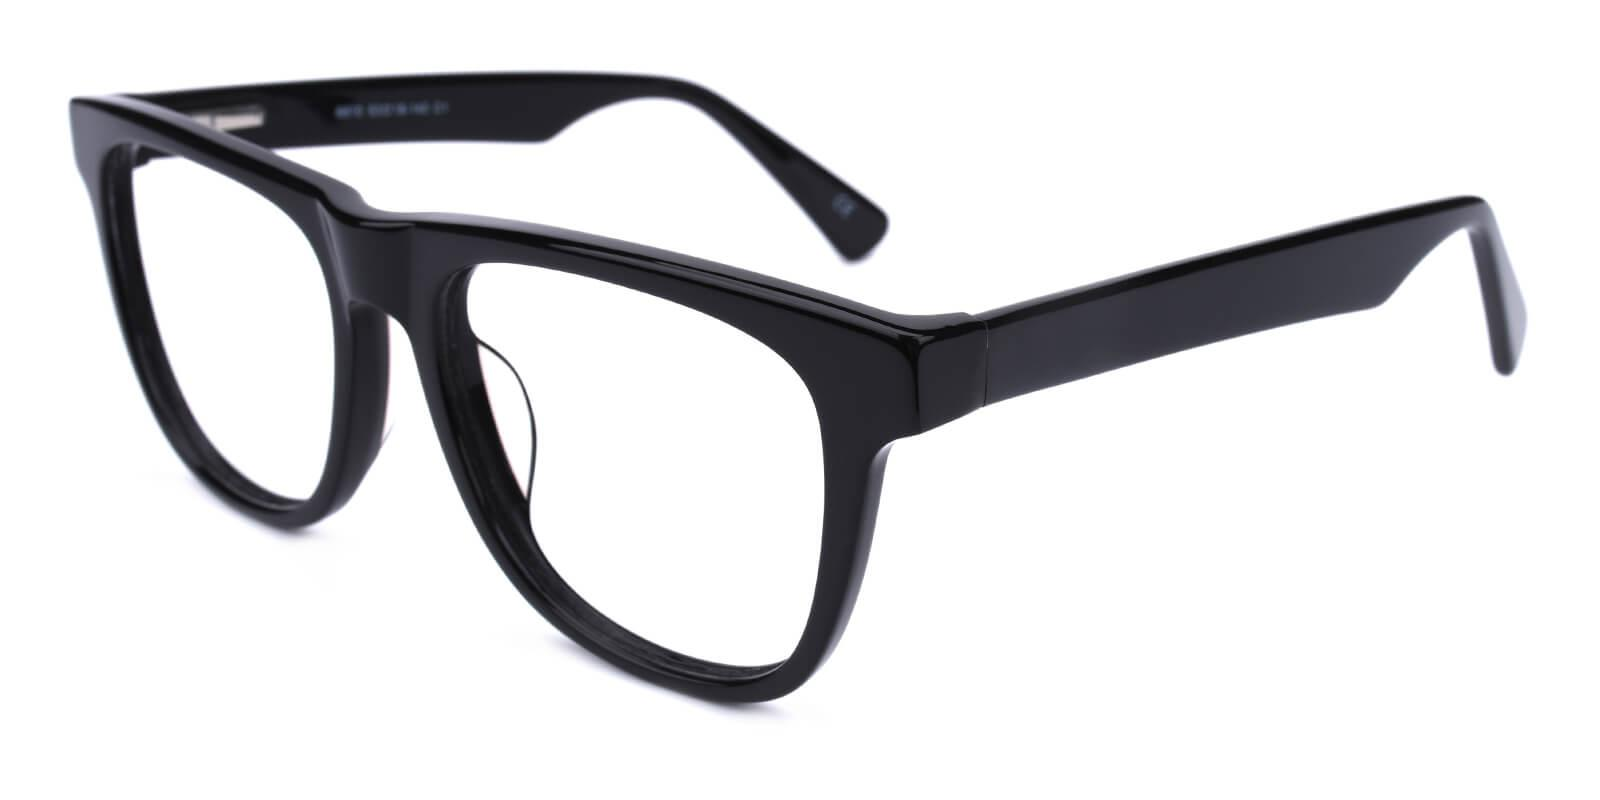 Masque-Black-Square-Acetate-Eyeglasses-detail